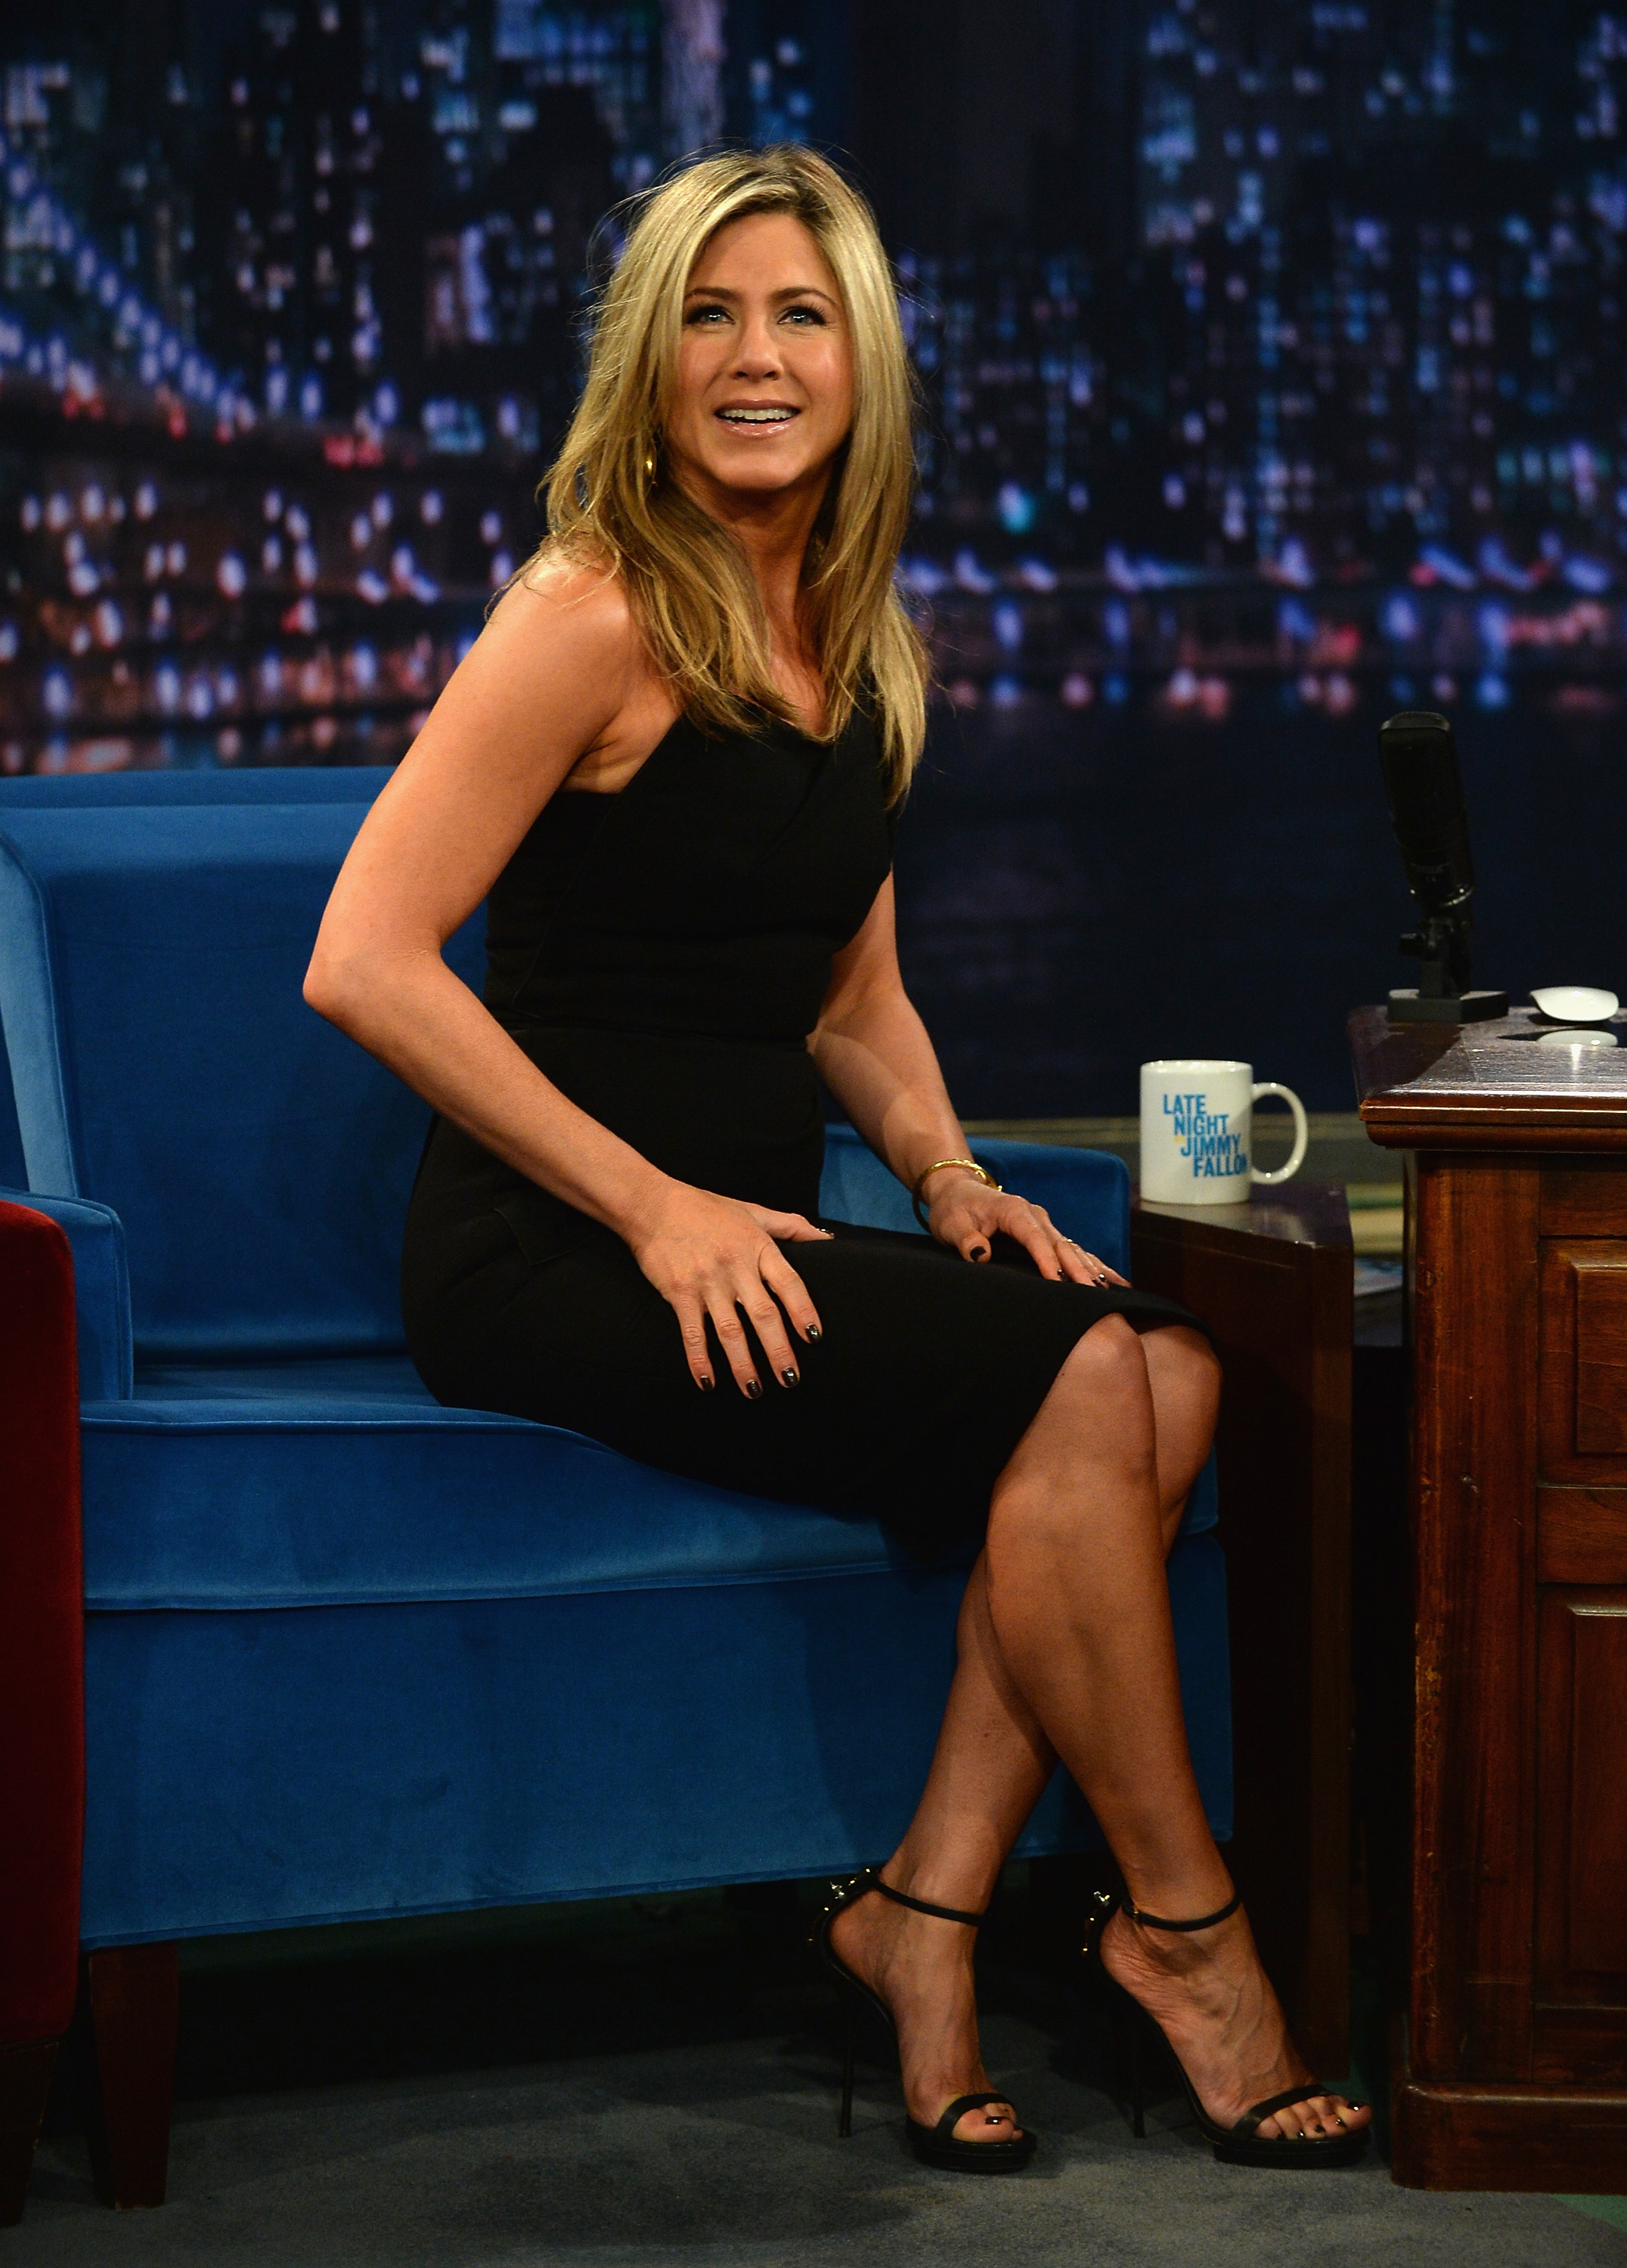 Kill them with kindness jennifer aniston gushes over angelina jolie in an interview - Jennifer aniston barefoot ...